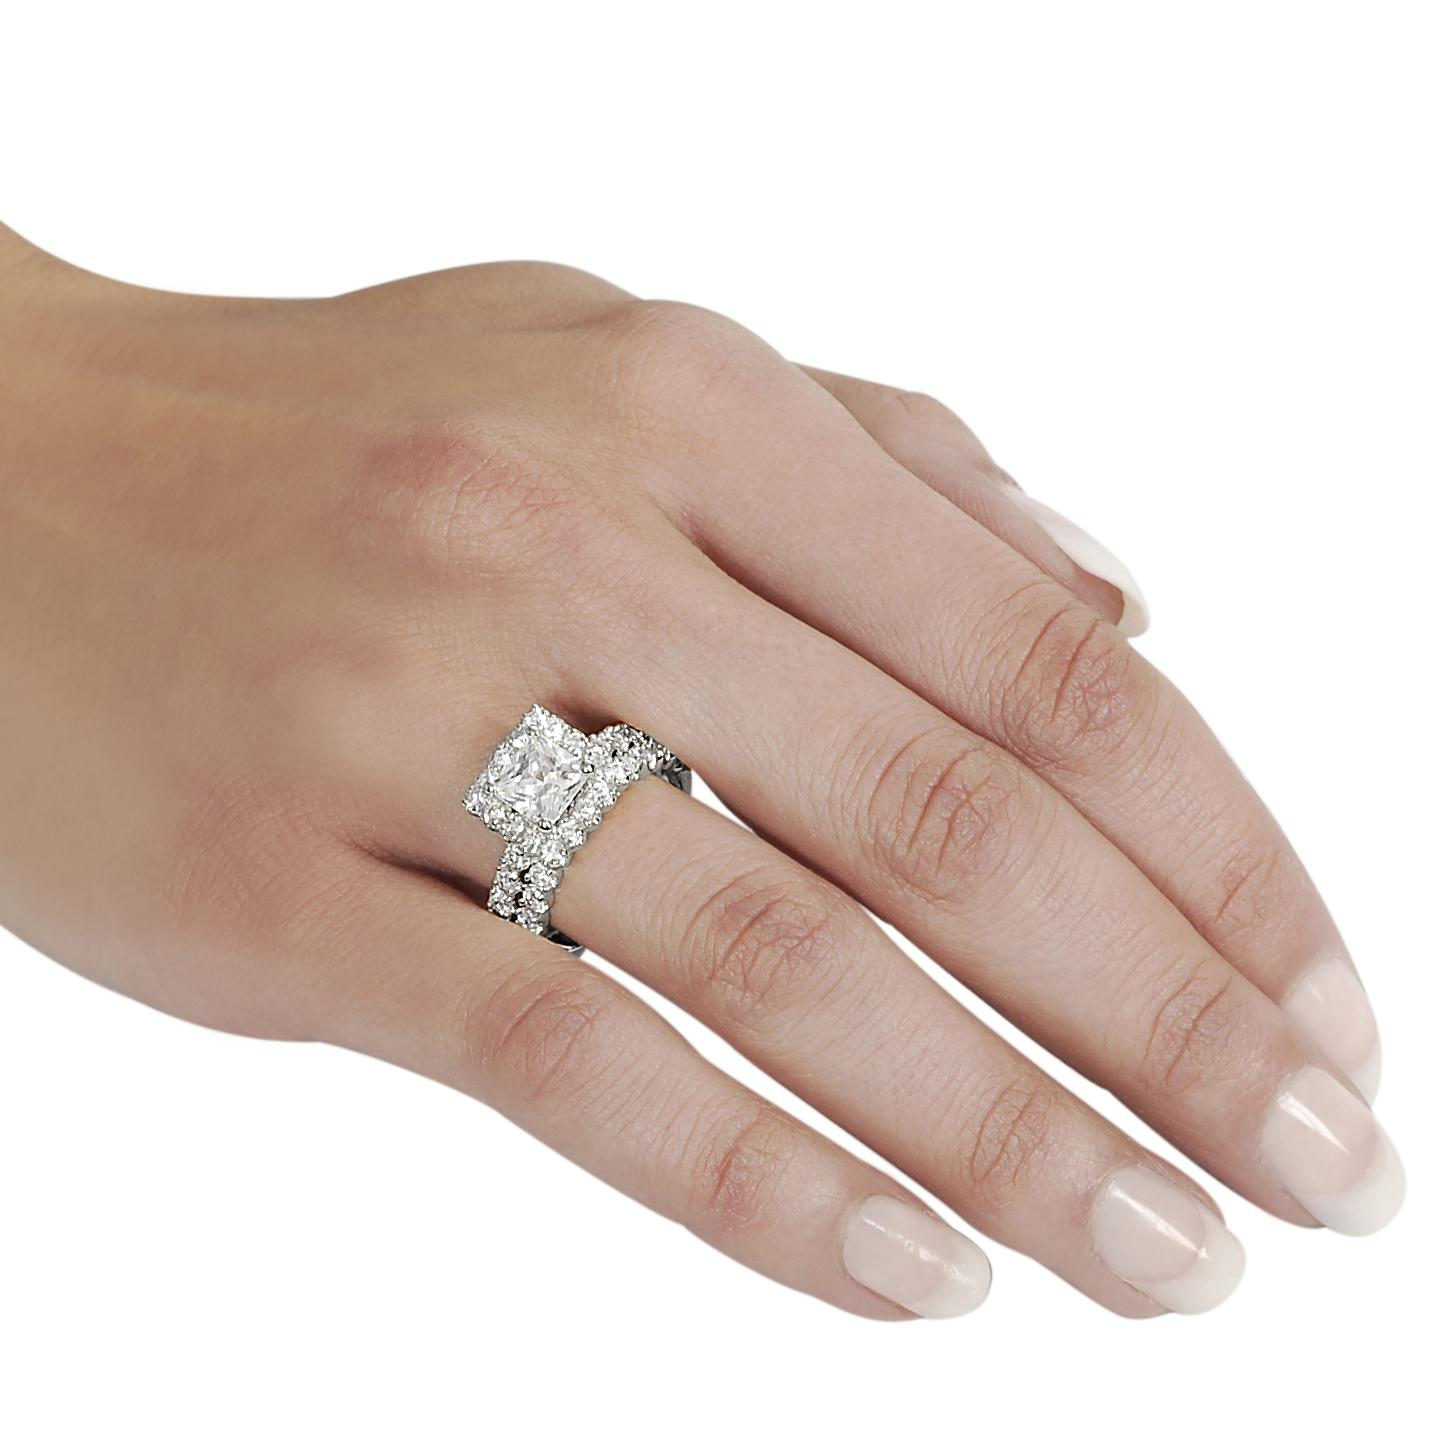 Journee Collection Silvertone Pave-set Princess-cut Cubic Zirconia Bridal-style Ring Set - Thumbnail 2